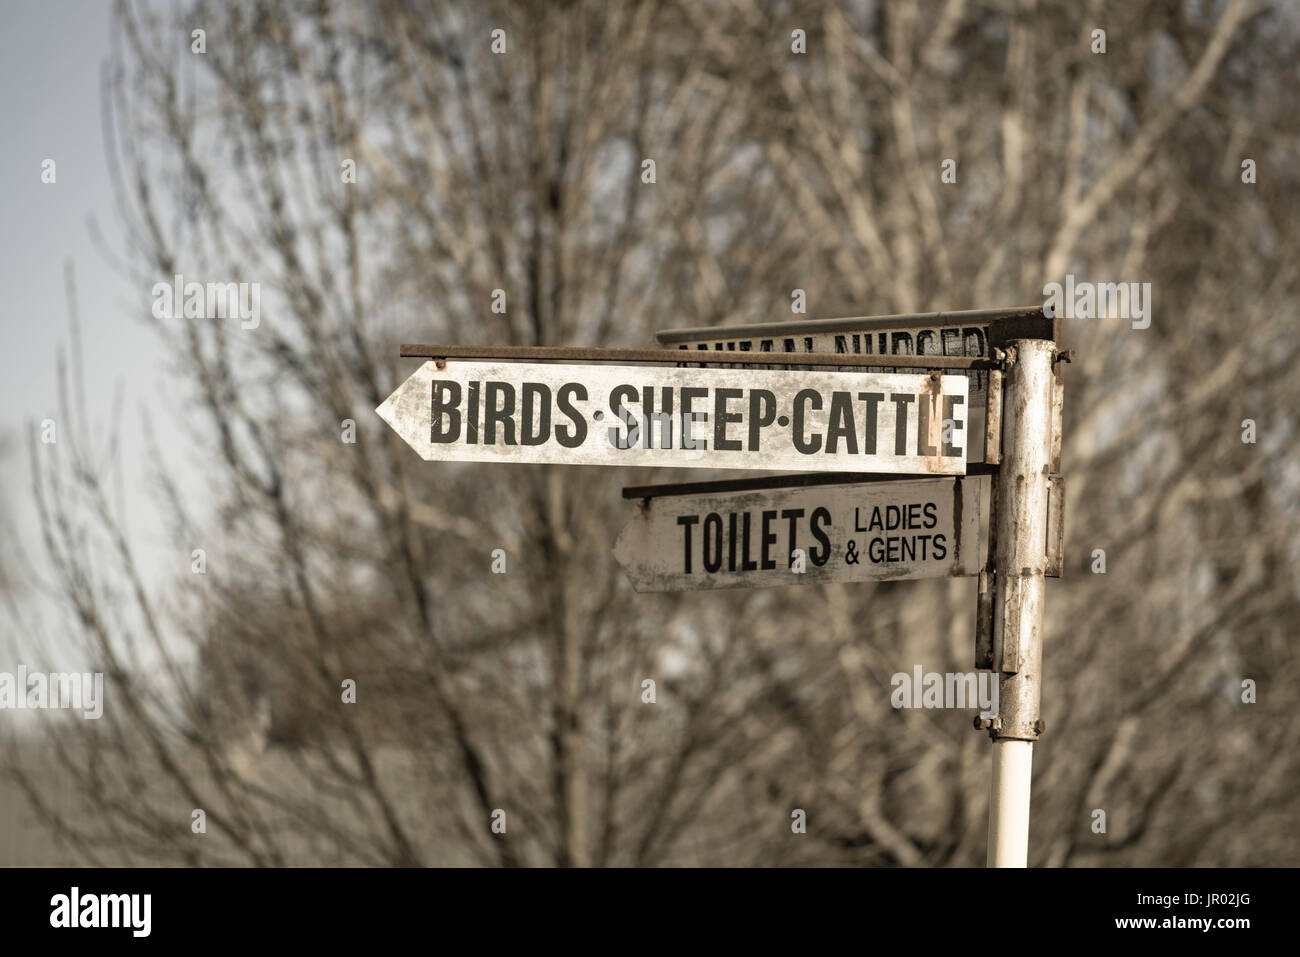 An unusual street sign at the Bathurst Showground in western NSW, Australia - Stock Image